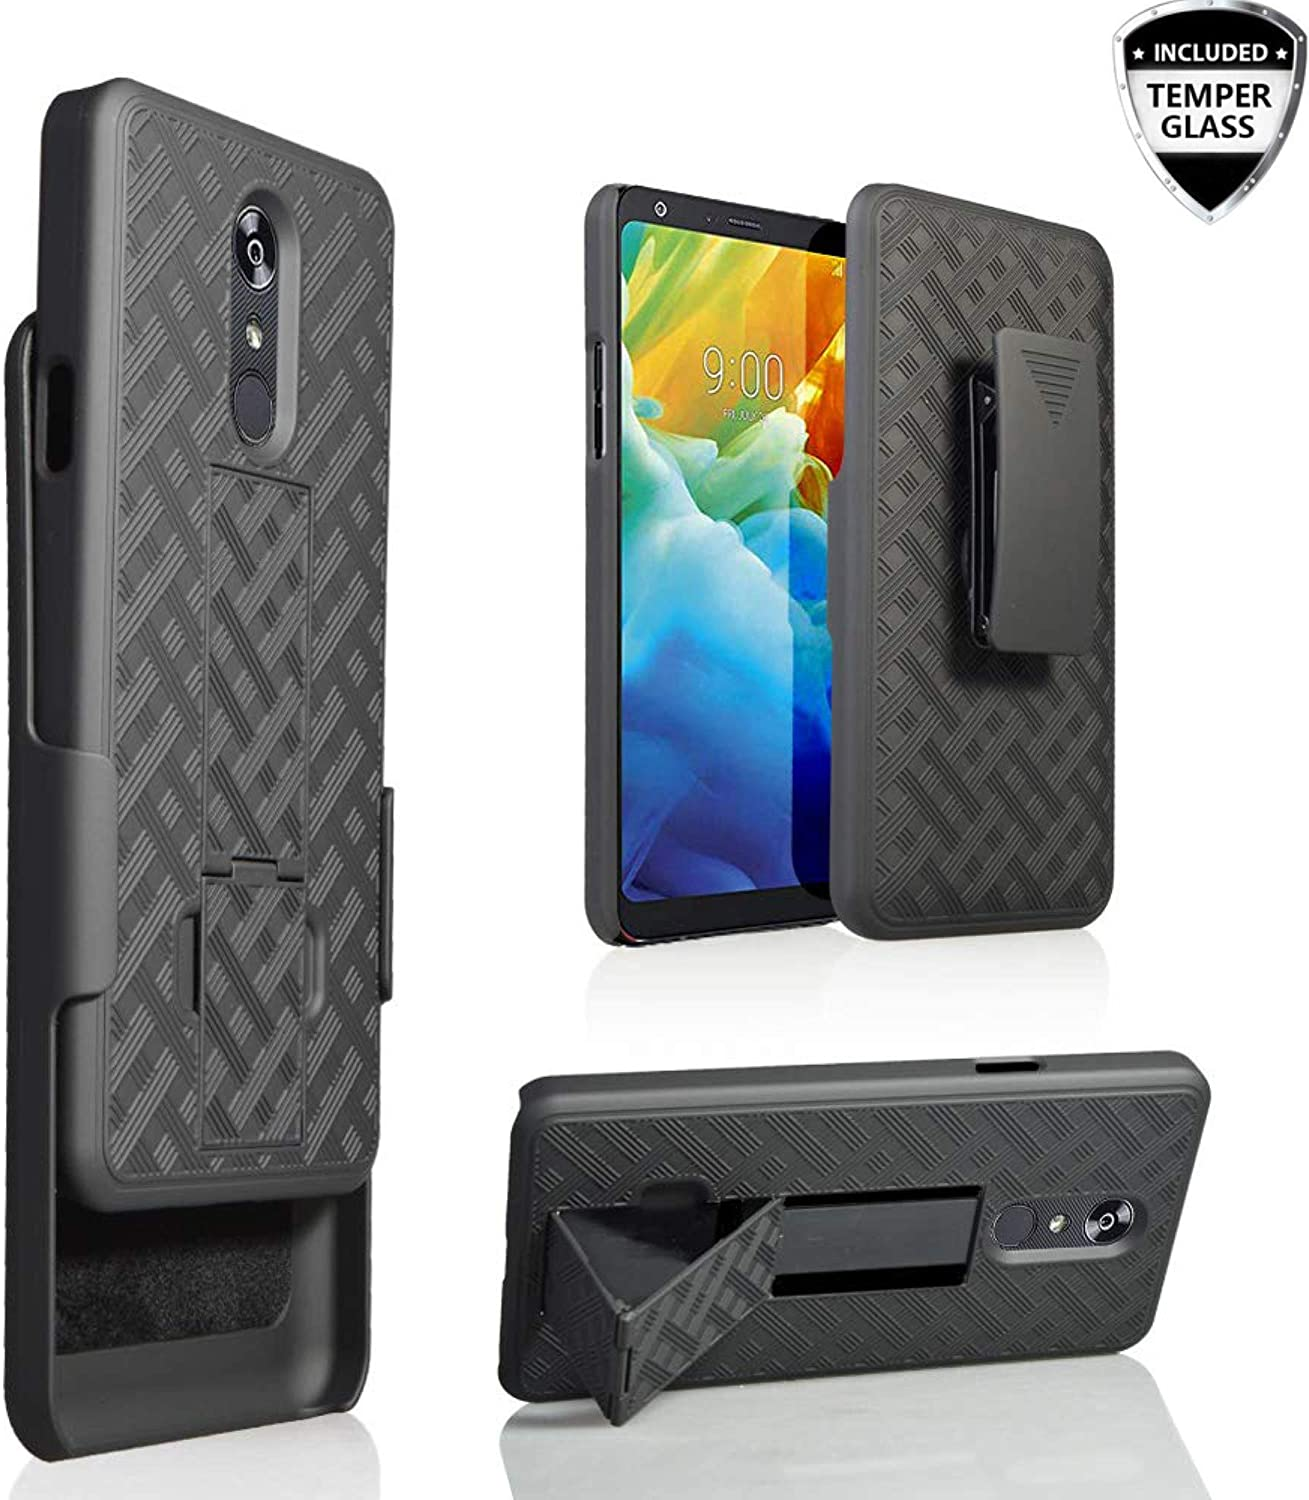 LG Stylo 5 Case, LG Stylo 5 Belt Clip Holster+Temper Glass Case Slim Fit Shell Combo Shell Holster Case Bulit-in Kickstand Protective Cover for LG Stylo 5 Phone 2019 Release, (Black)